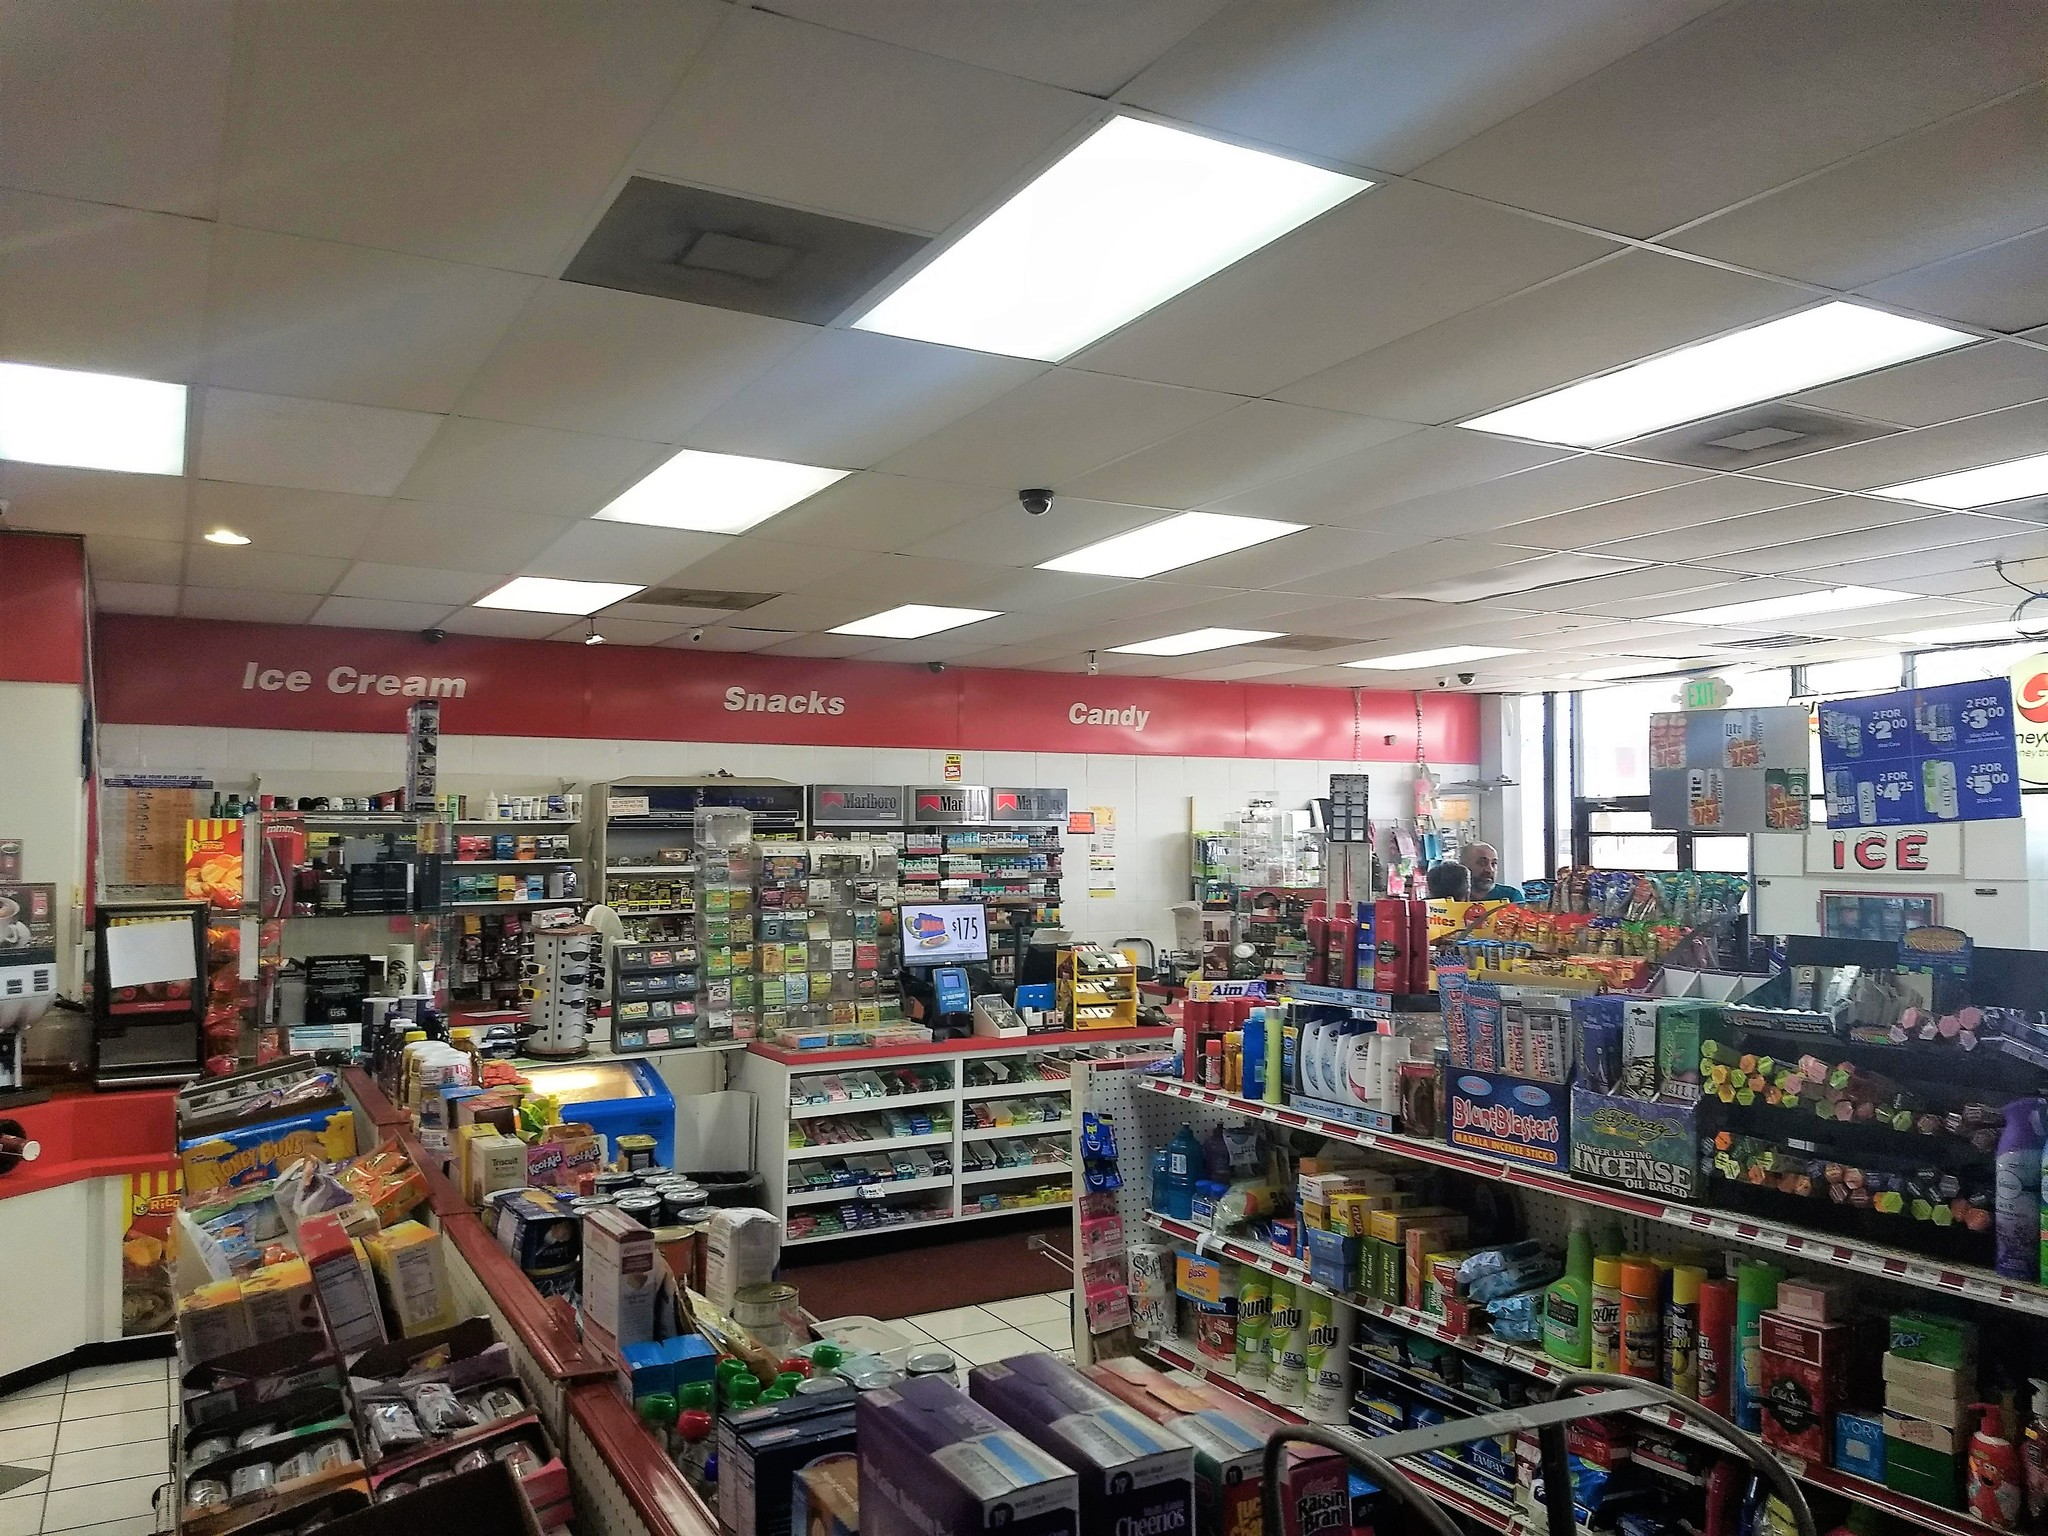 Citgo Gas Station for $399K – Houston (Humble)